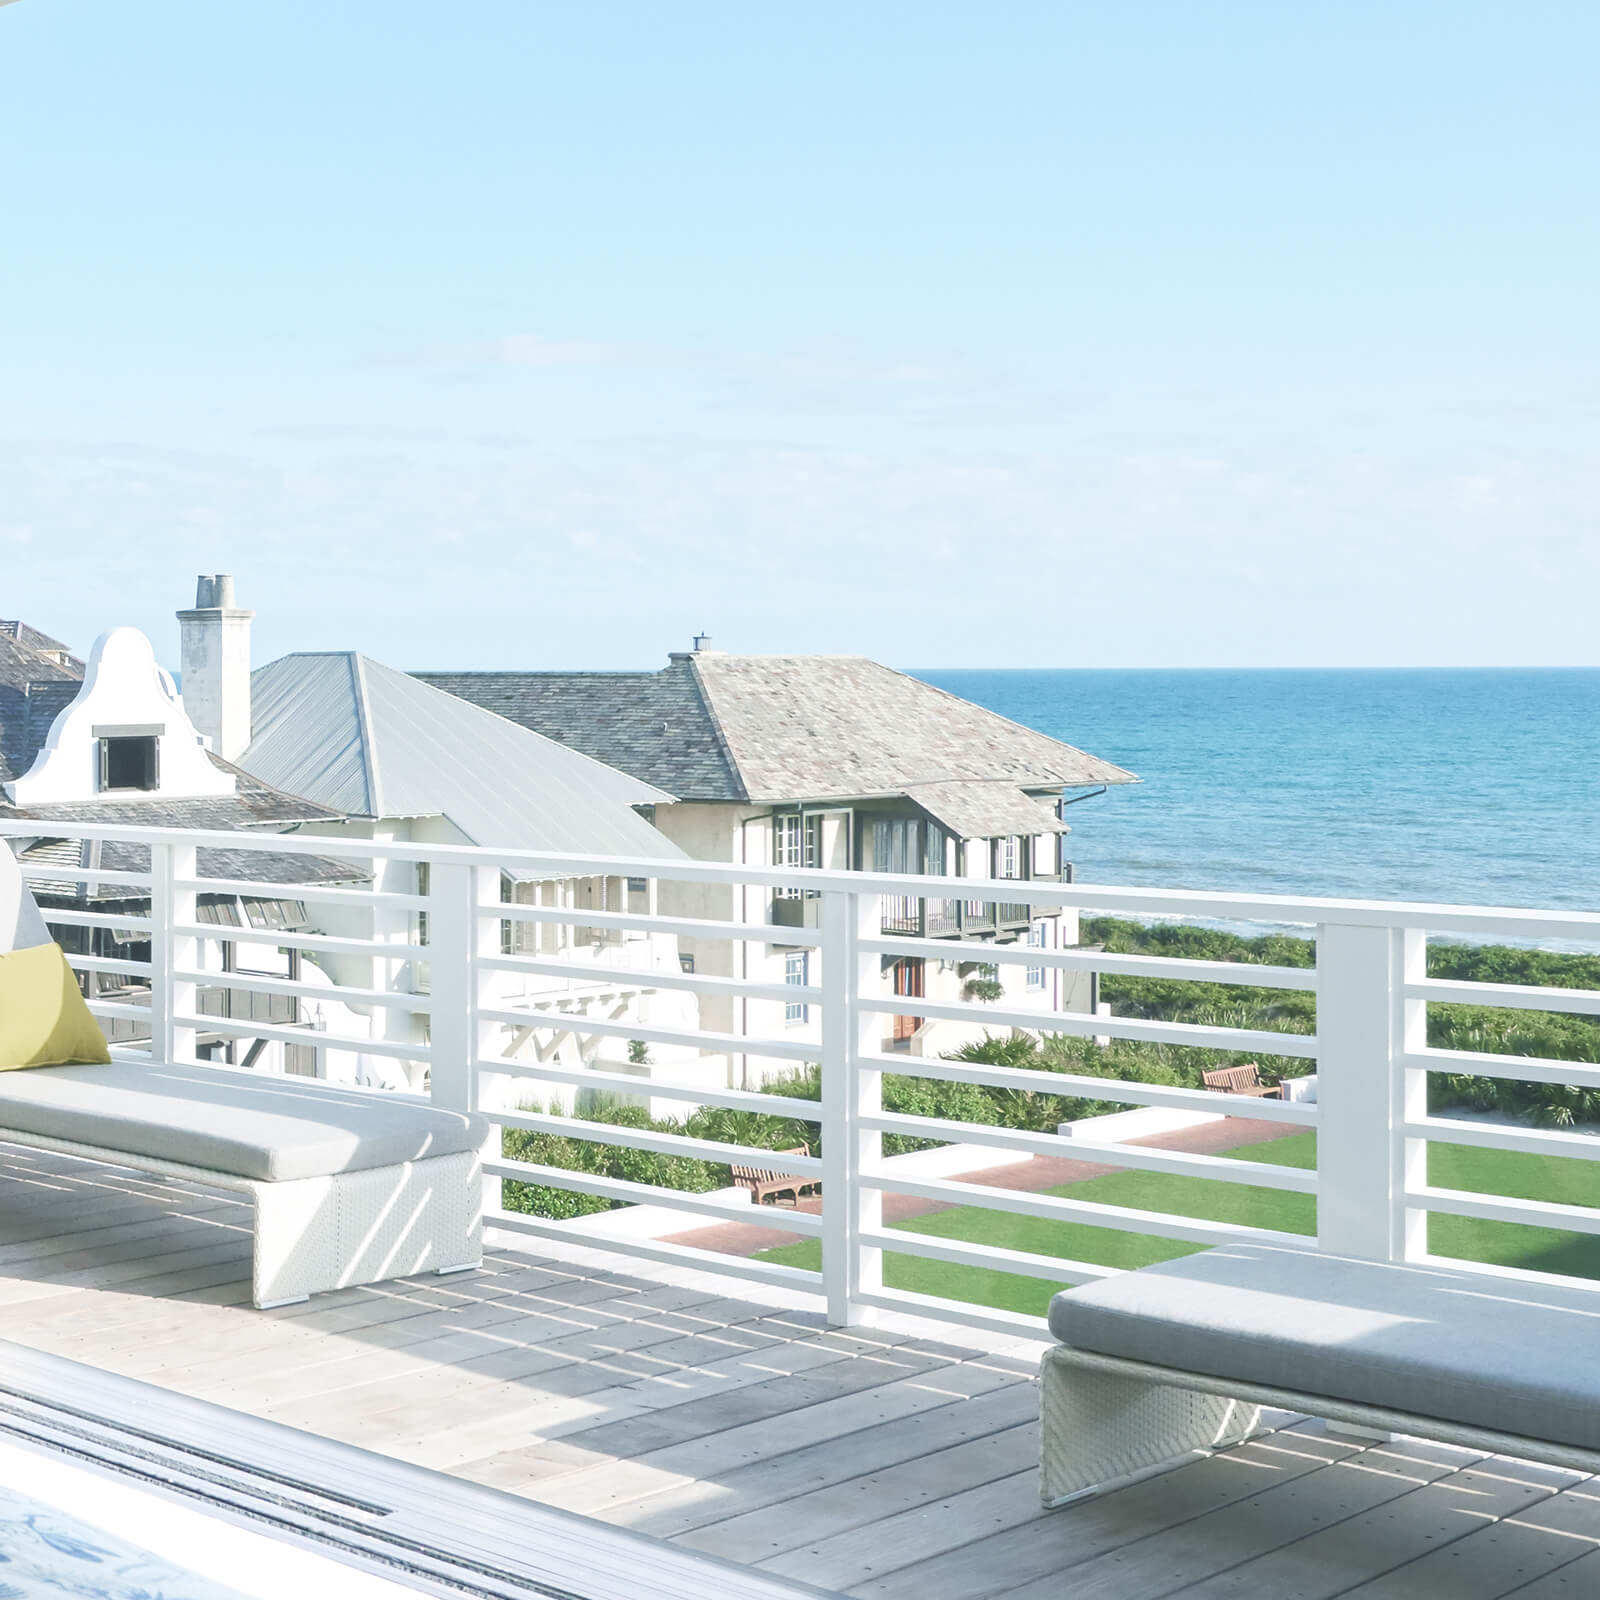 A deck overlooking the ocean at Vern Yip's Rosemary Beach home.